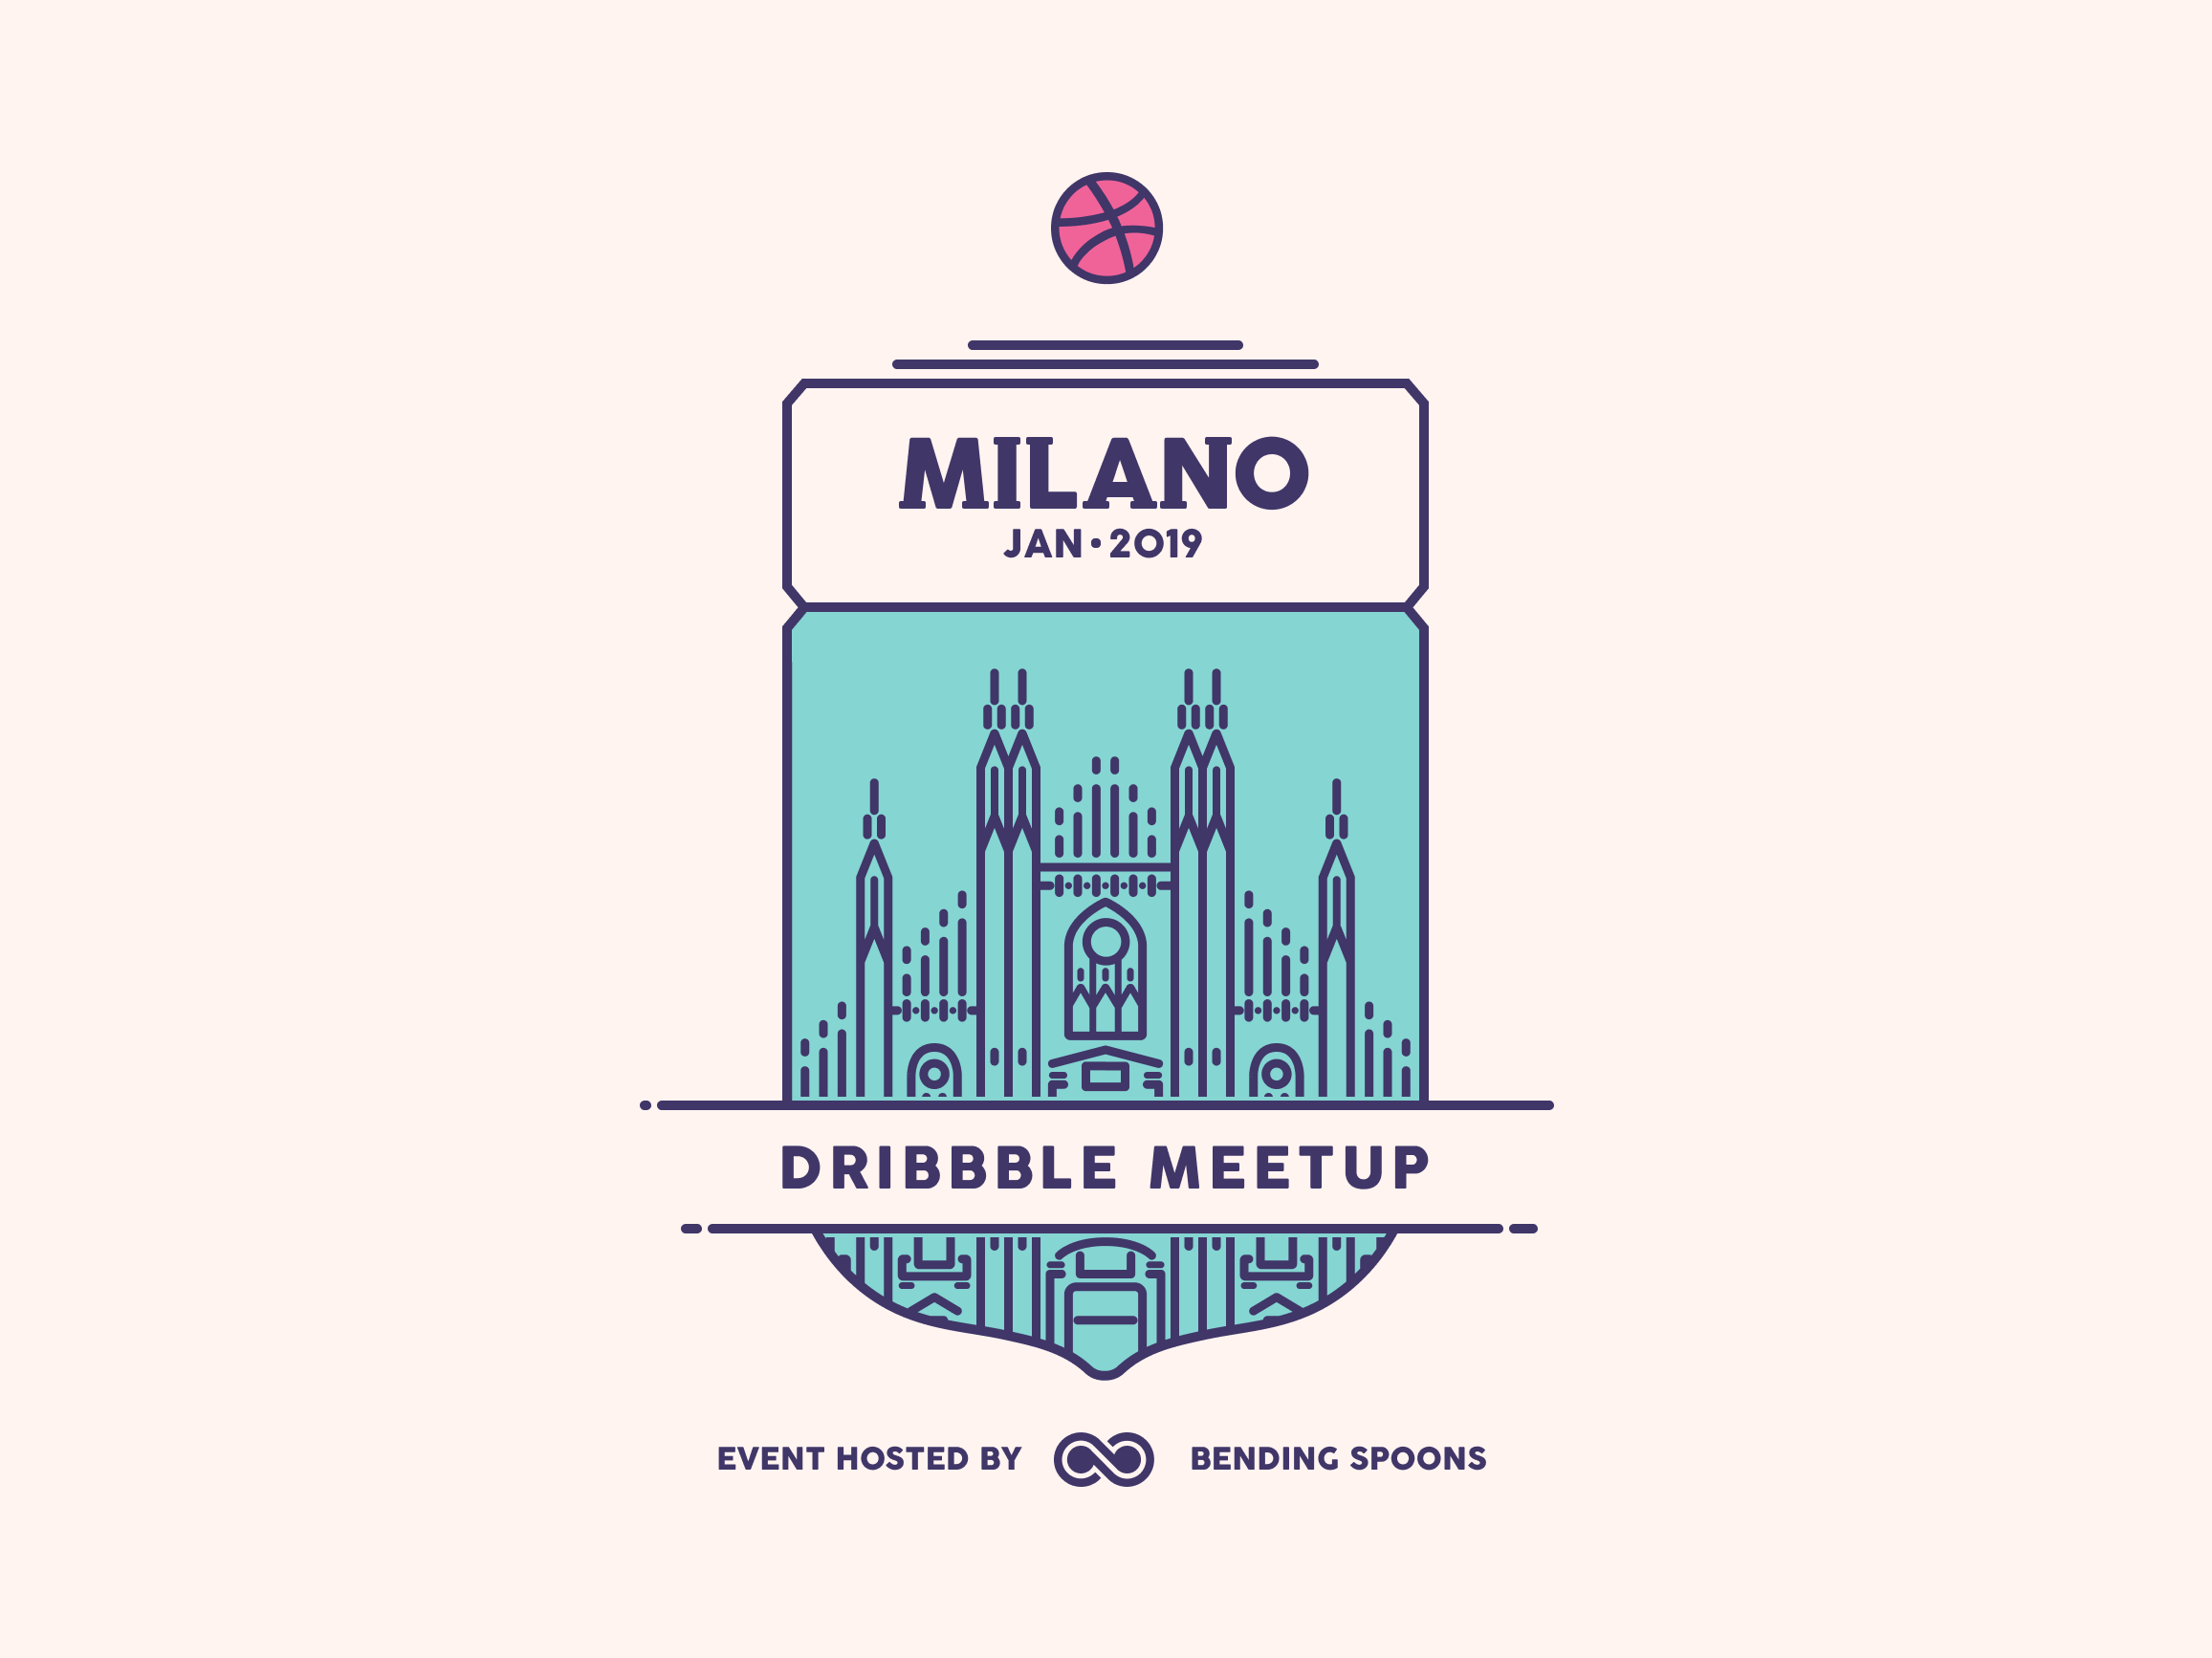 Announcing Milan Dribbble Meetup 2019